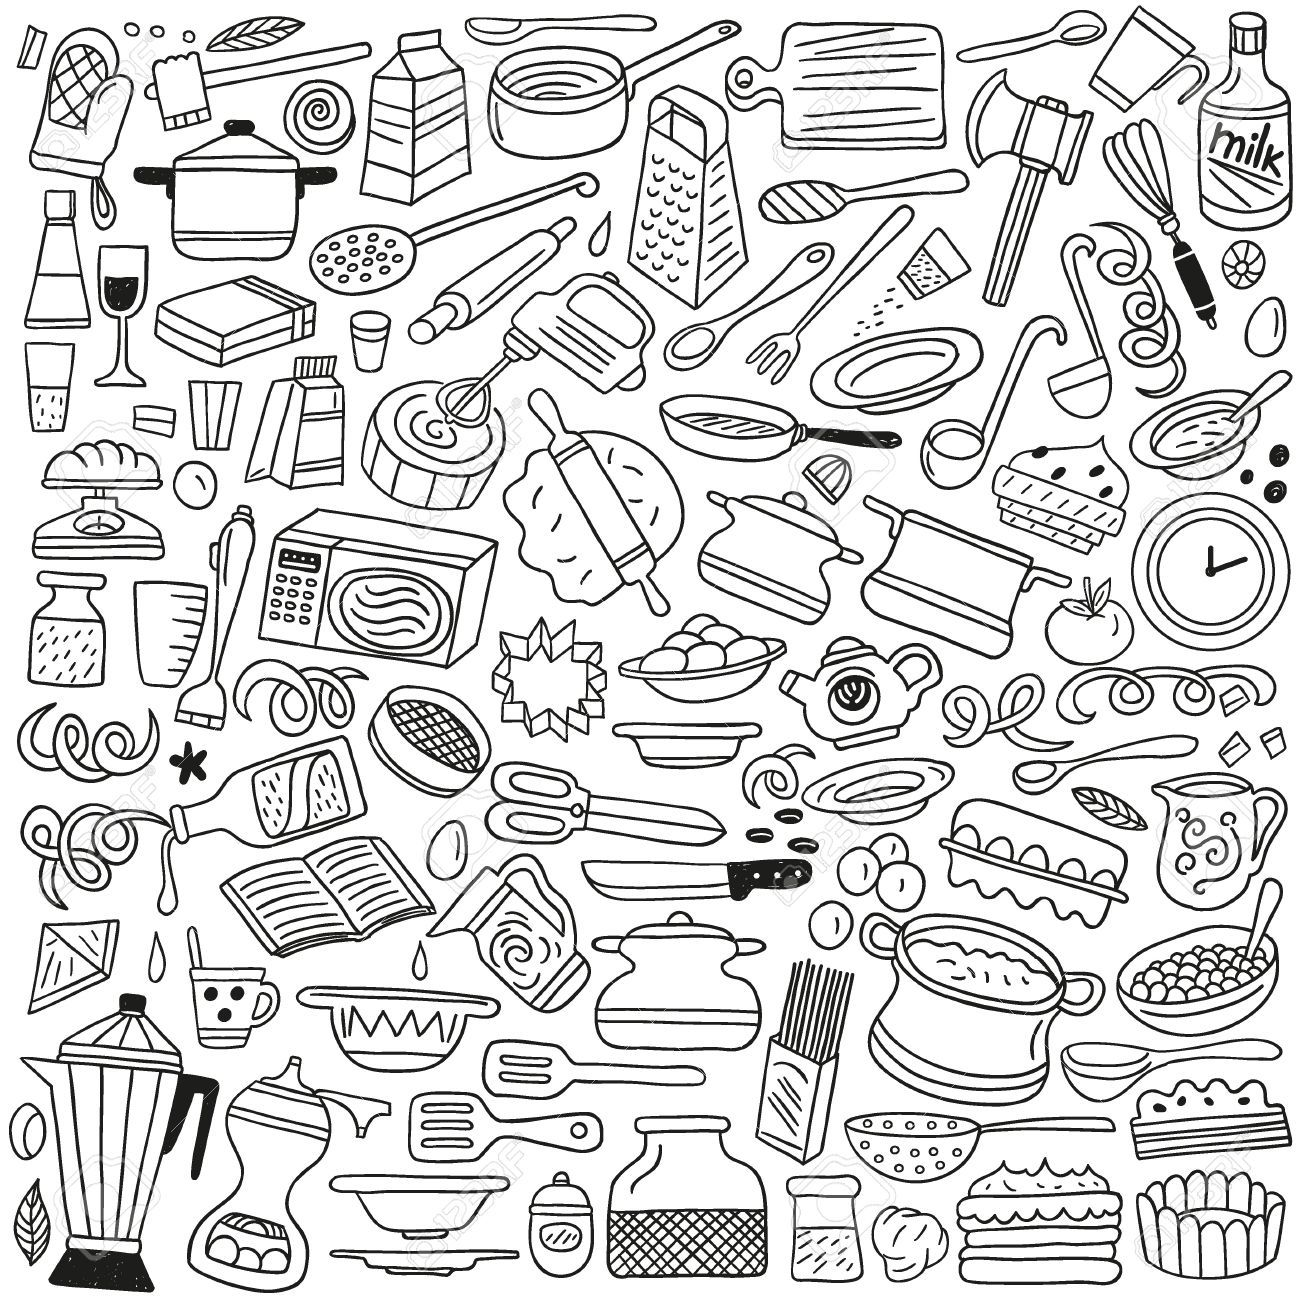 Baking doodle illustrations google search